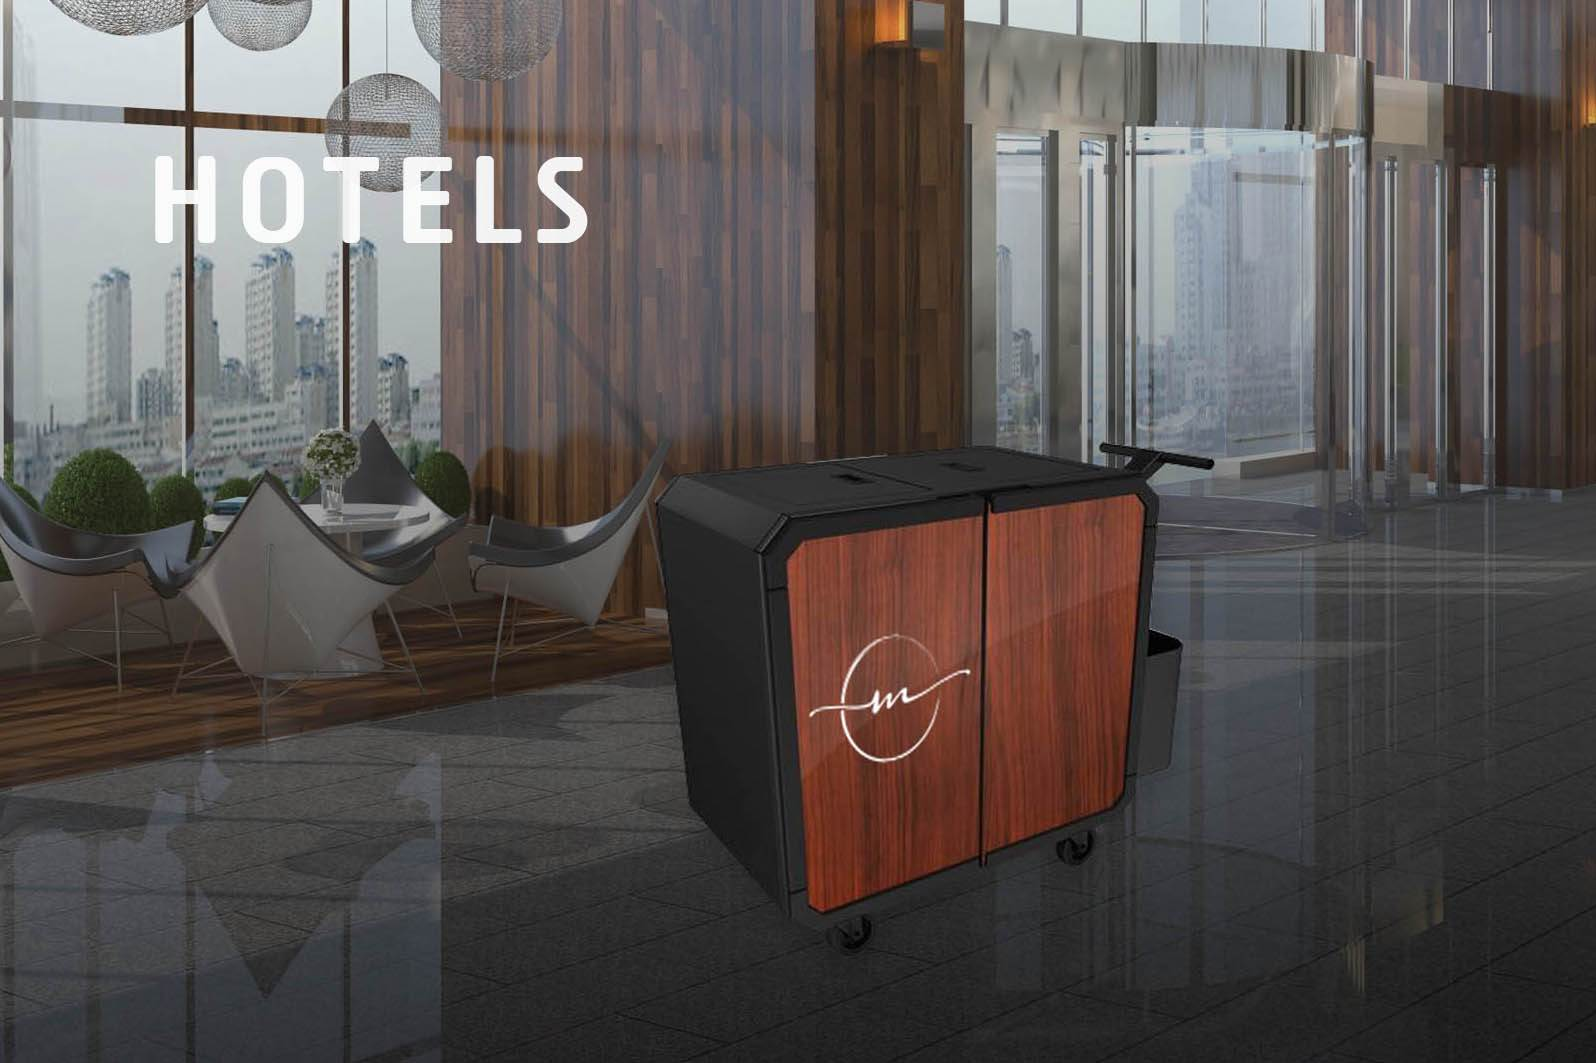 Netsmart professionnal cleaning trolley for hotels